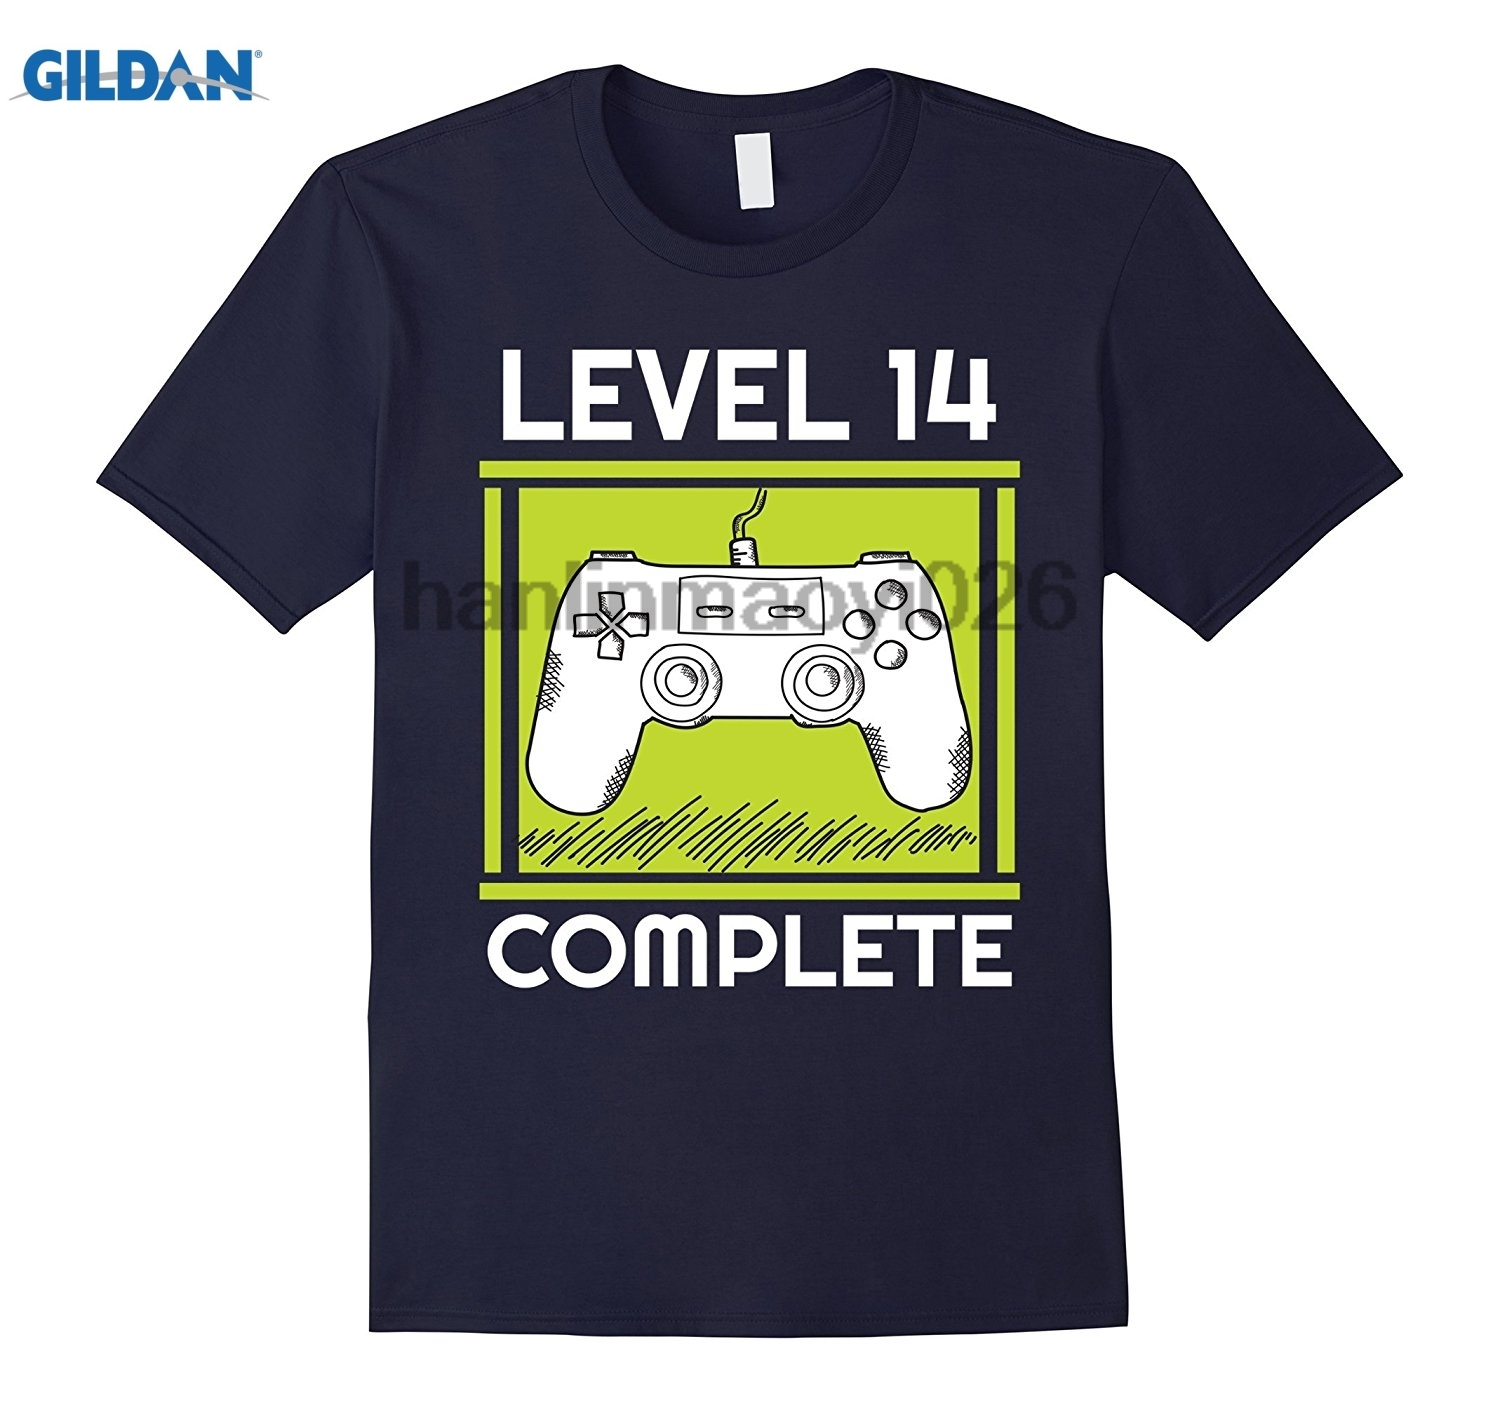 GILDAN Level 14 Complete Funny Video Games 14 Birthday Gift T-Shirt